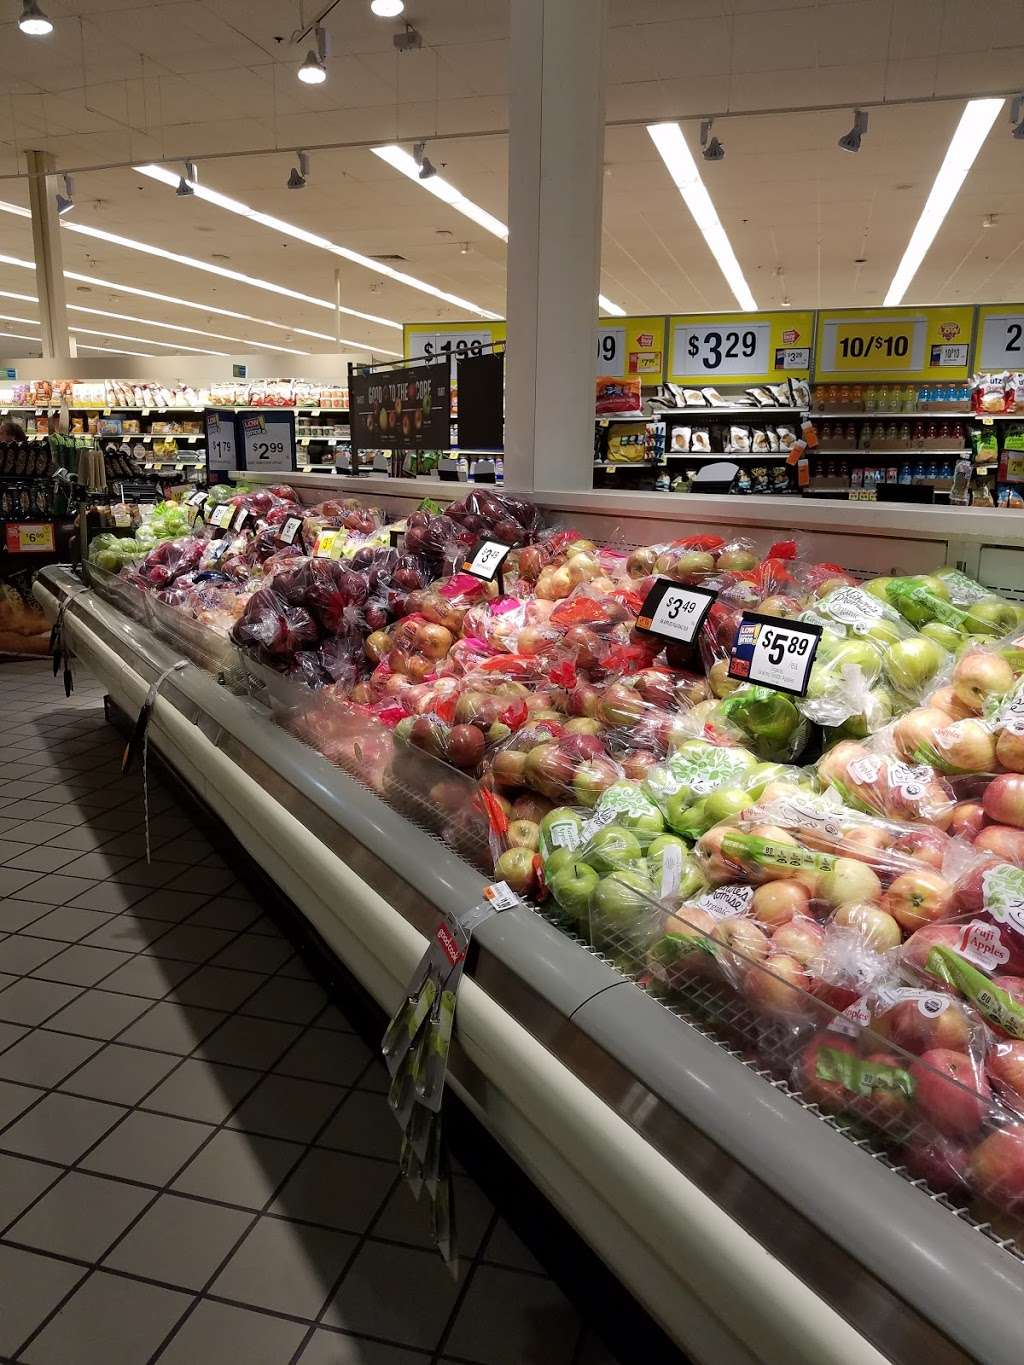 GIANT Food Stores, 1544 Route 61 Hwy S, #6100, Pottsville, PA 17901, USA